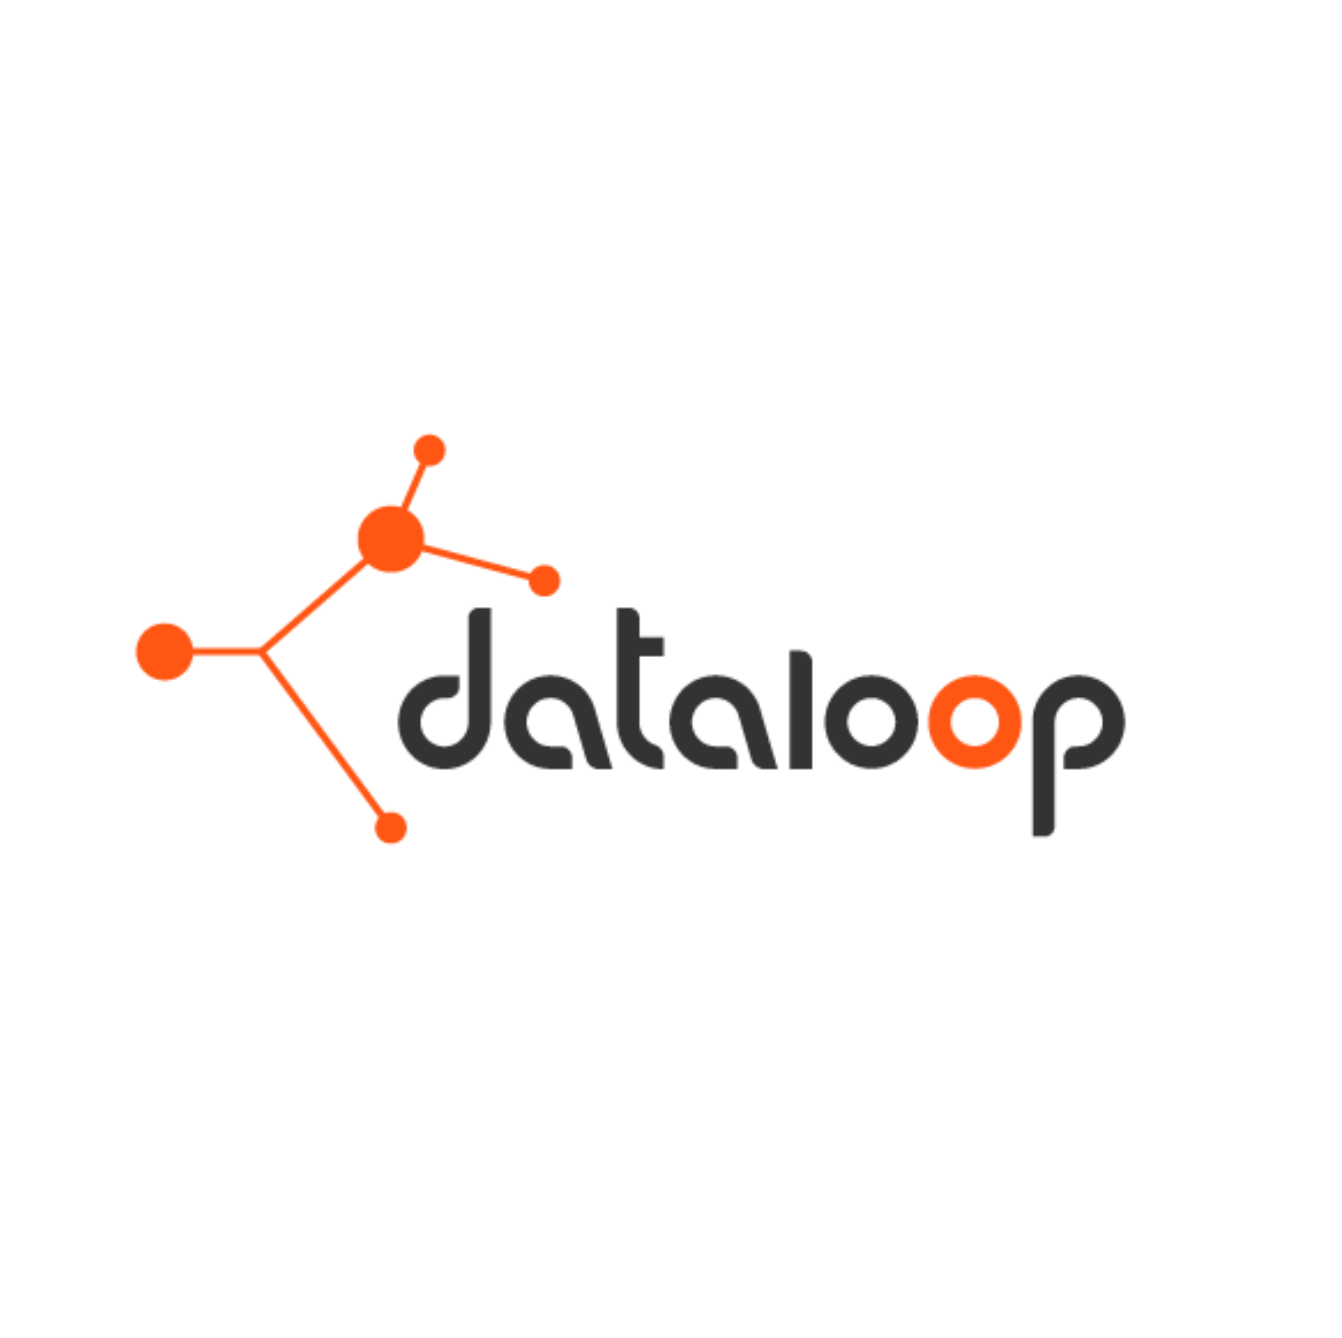 dataloop - Data management platform for AI